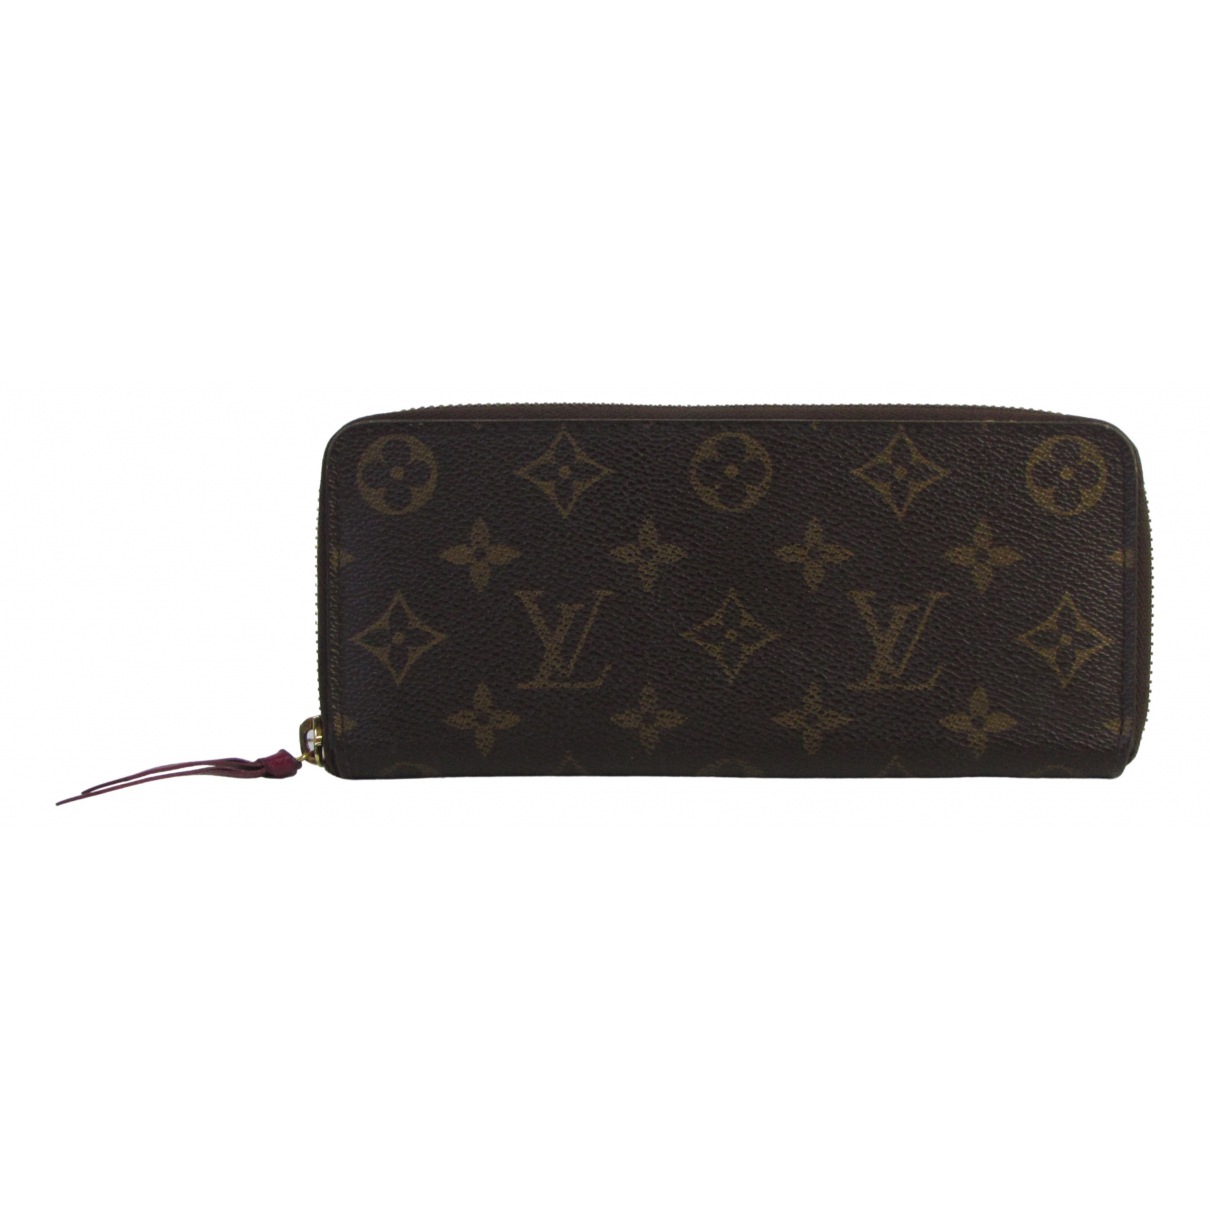 Cartera Clemence de Lona Louis Vuitton